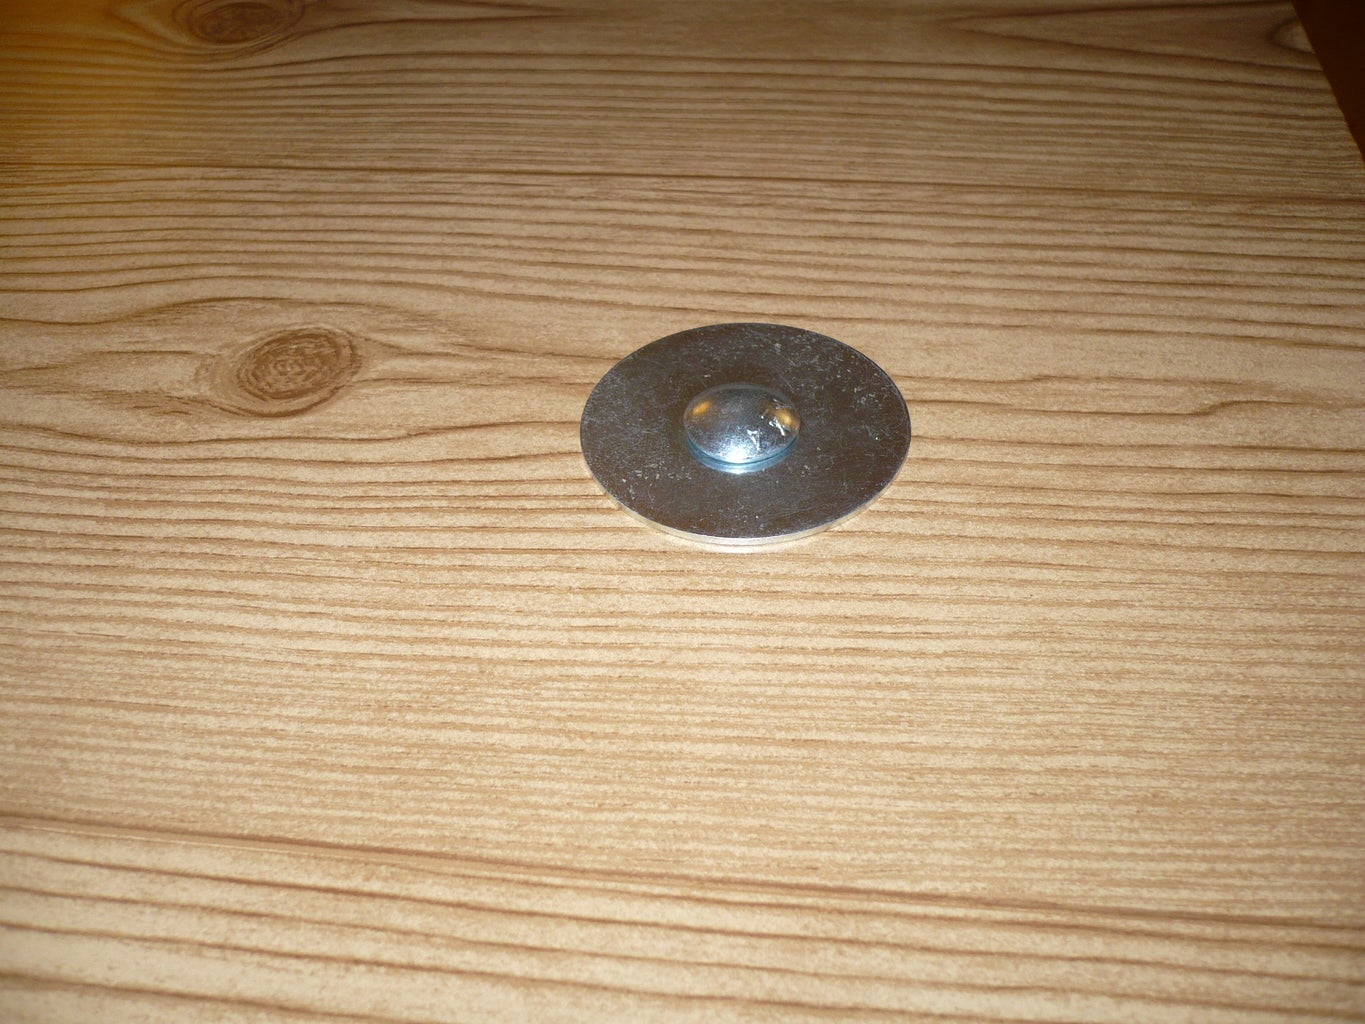 Put the Washer/bolt Into the Table.